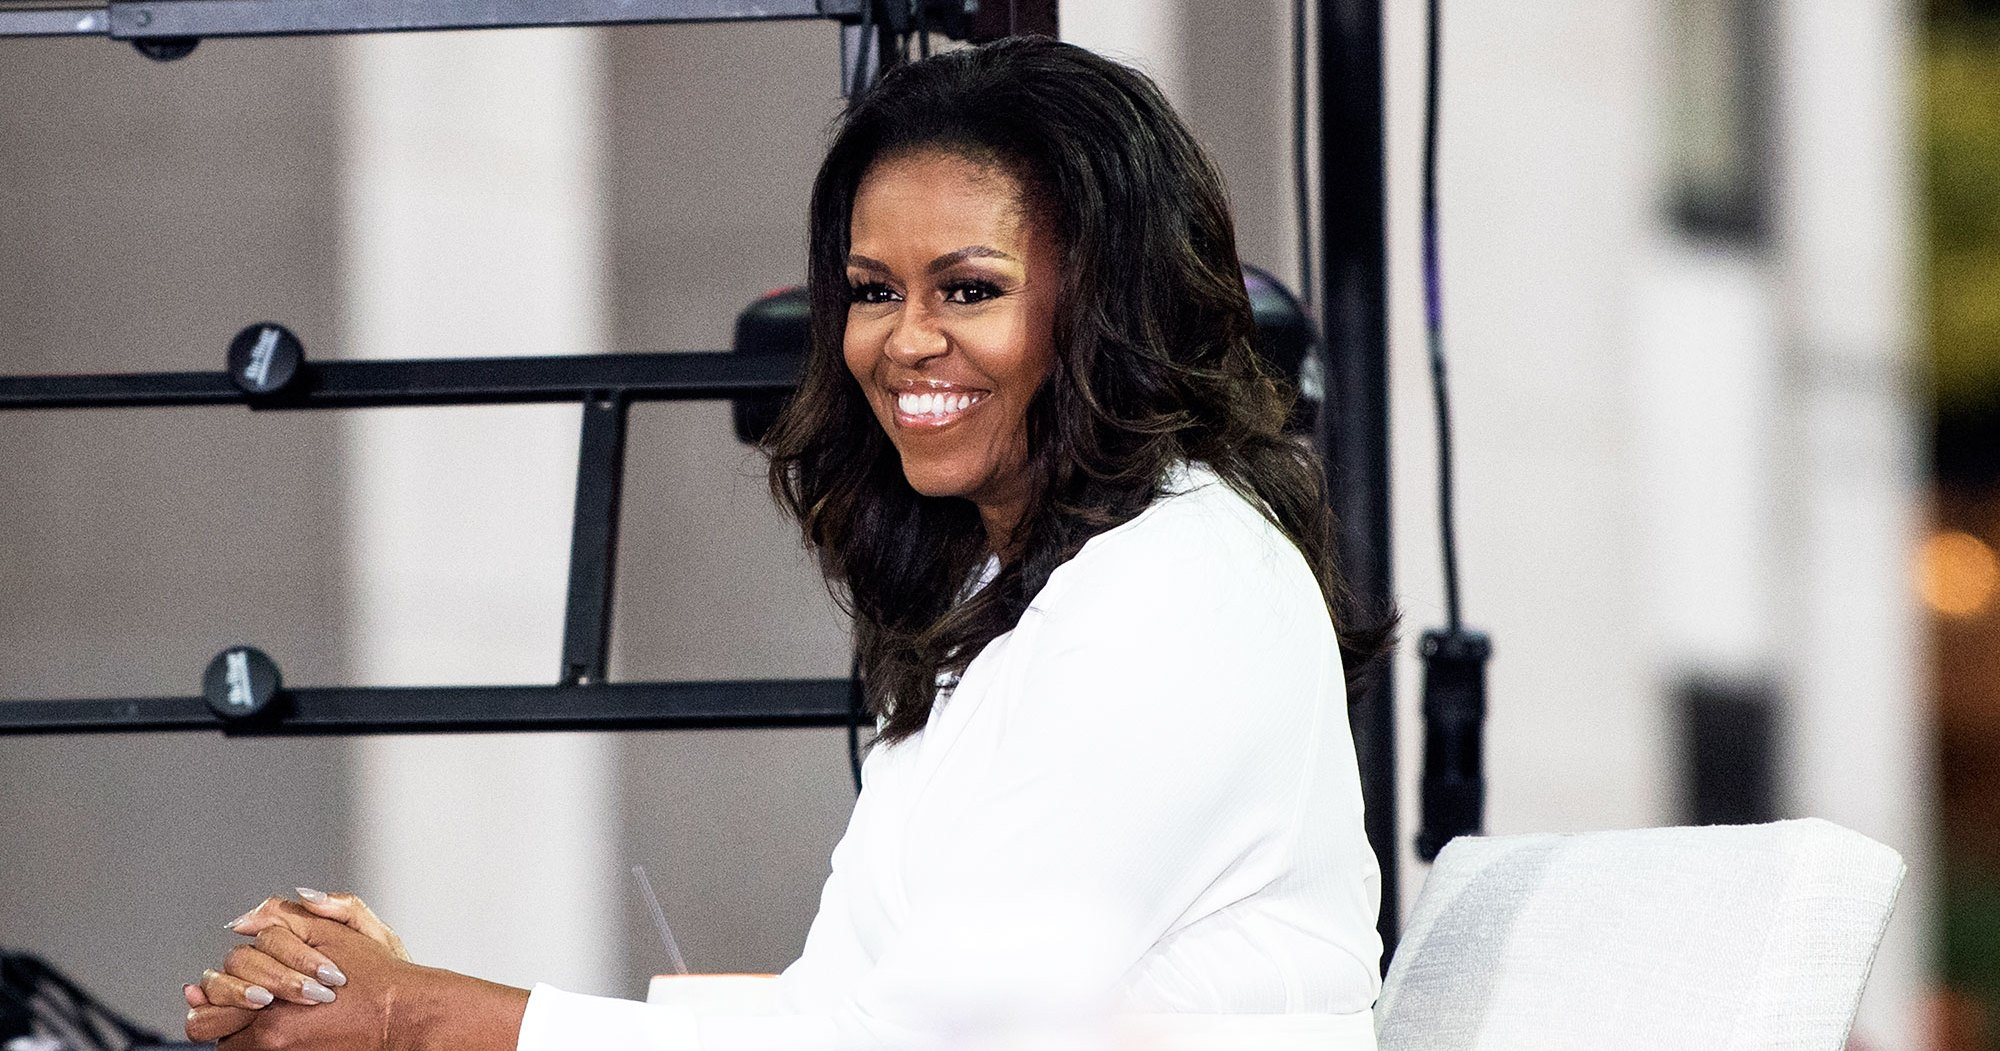 Michelle Obama Gives Sweet Backstory on George W. Bush Handing Her Candy